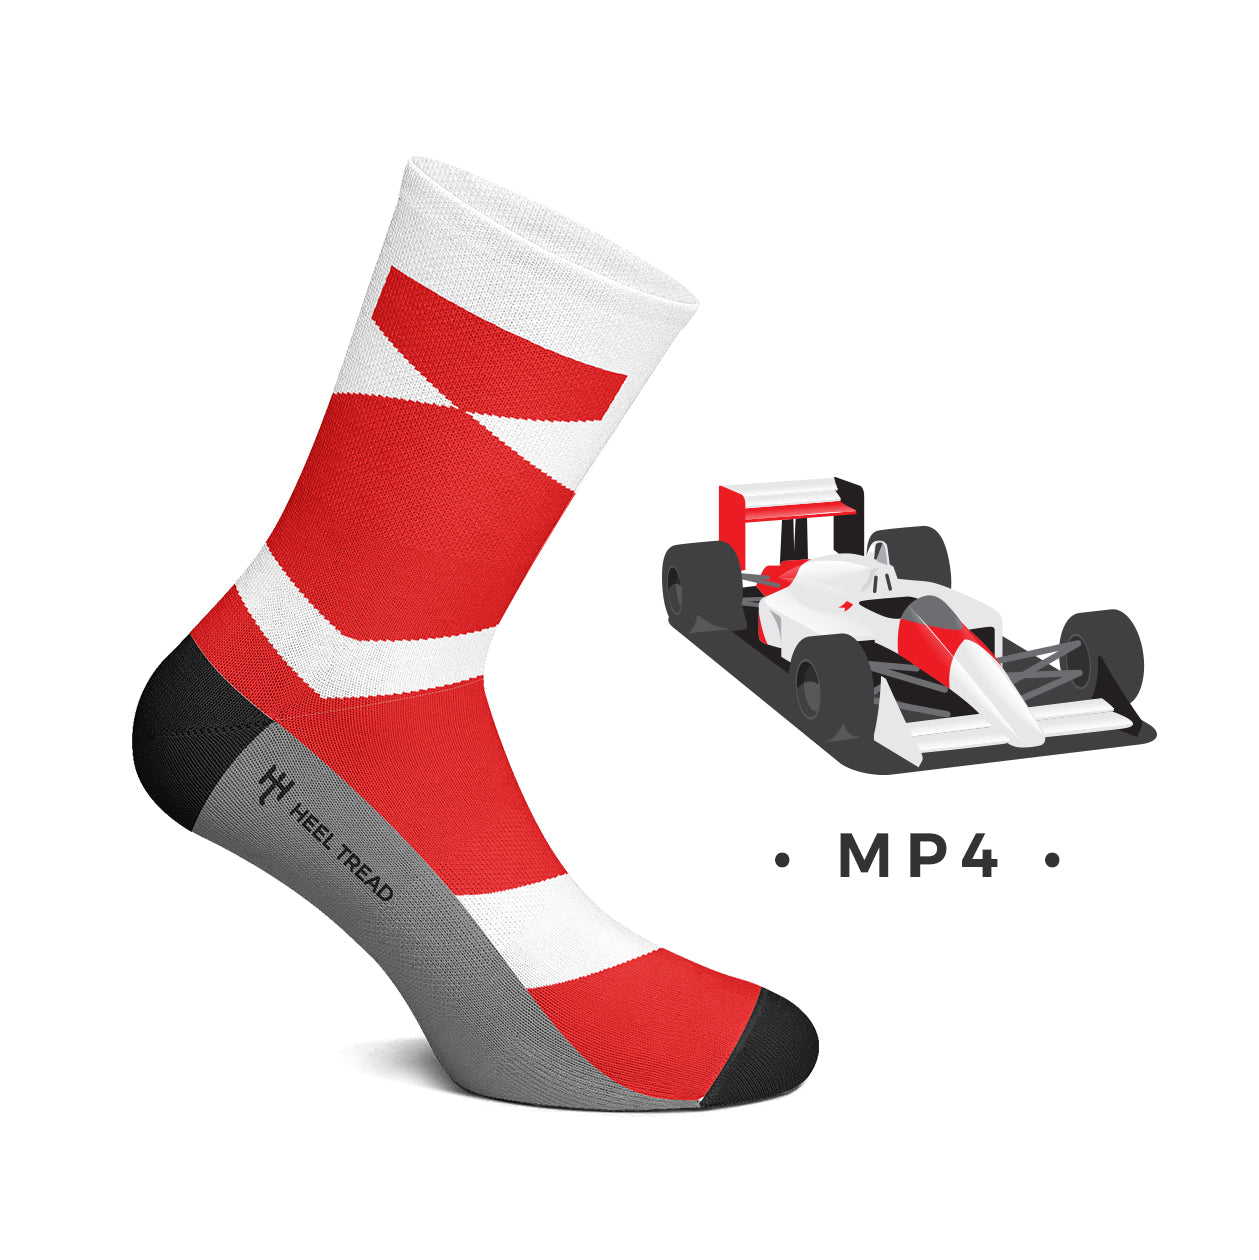 Heel Tread - MP4 Socks